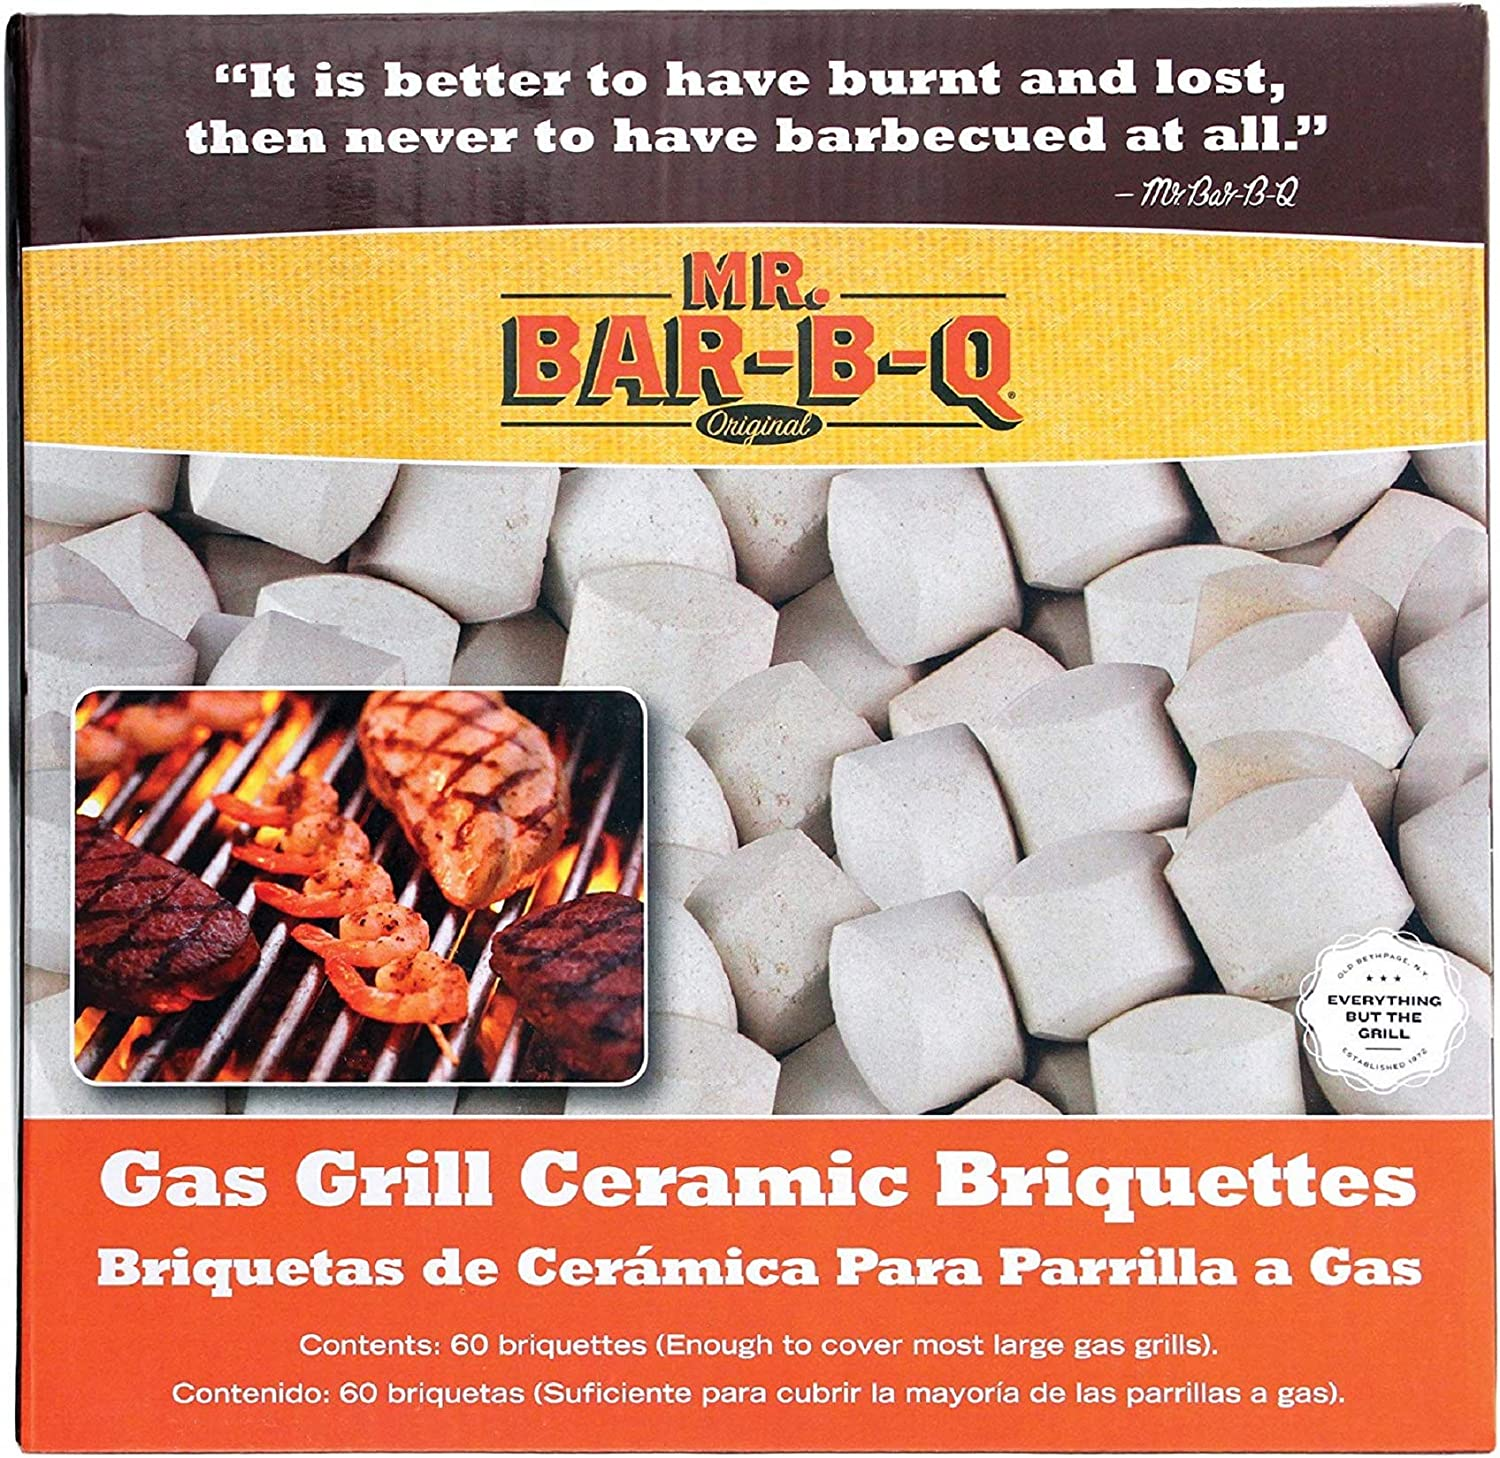 Mr. Bar-B-Q 06000Y Ceramic Gas Grill Self Cleaning Briquettes, Replacement for Lava Rocks, Cleaner Cooking, Gas Grill Briquettes for BBQ Grill, EMW8015680, 60 Count : Grill Parts : Garden & Outdoor